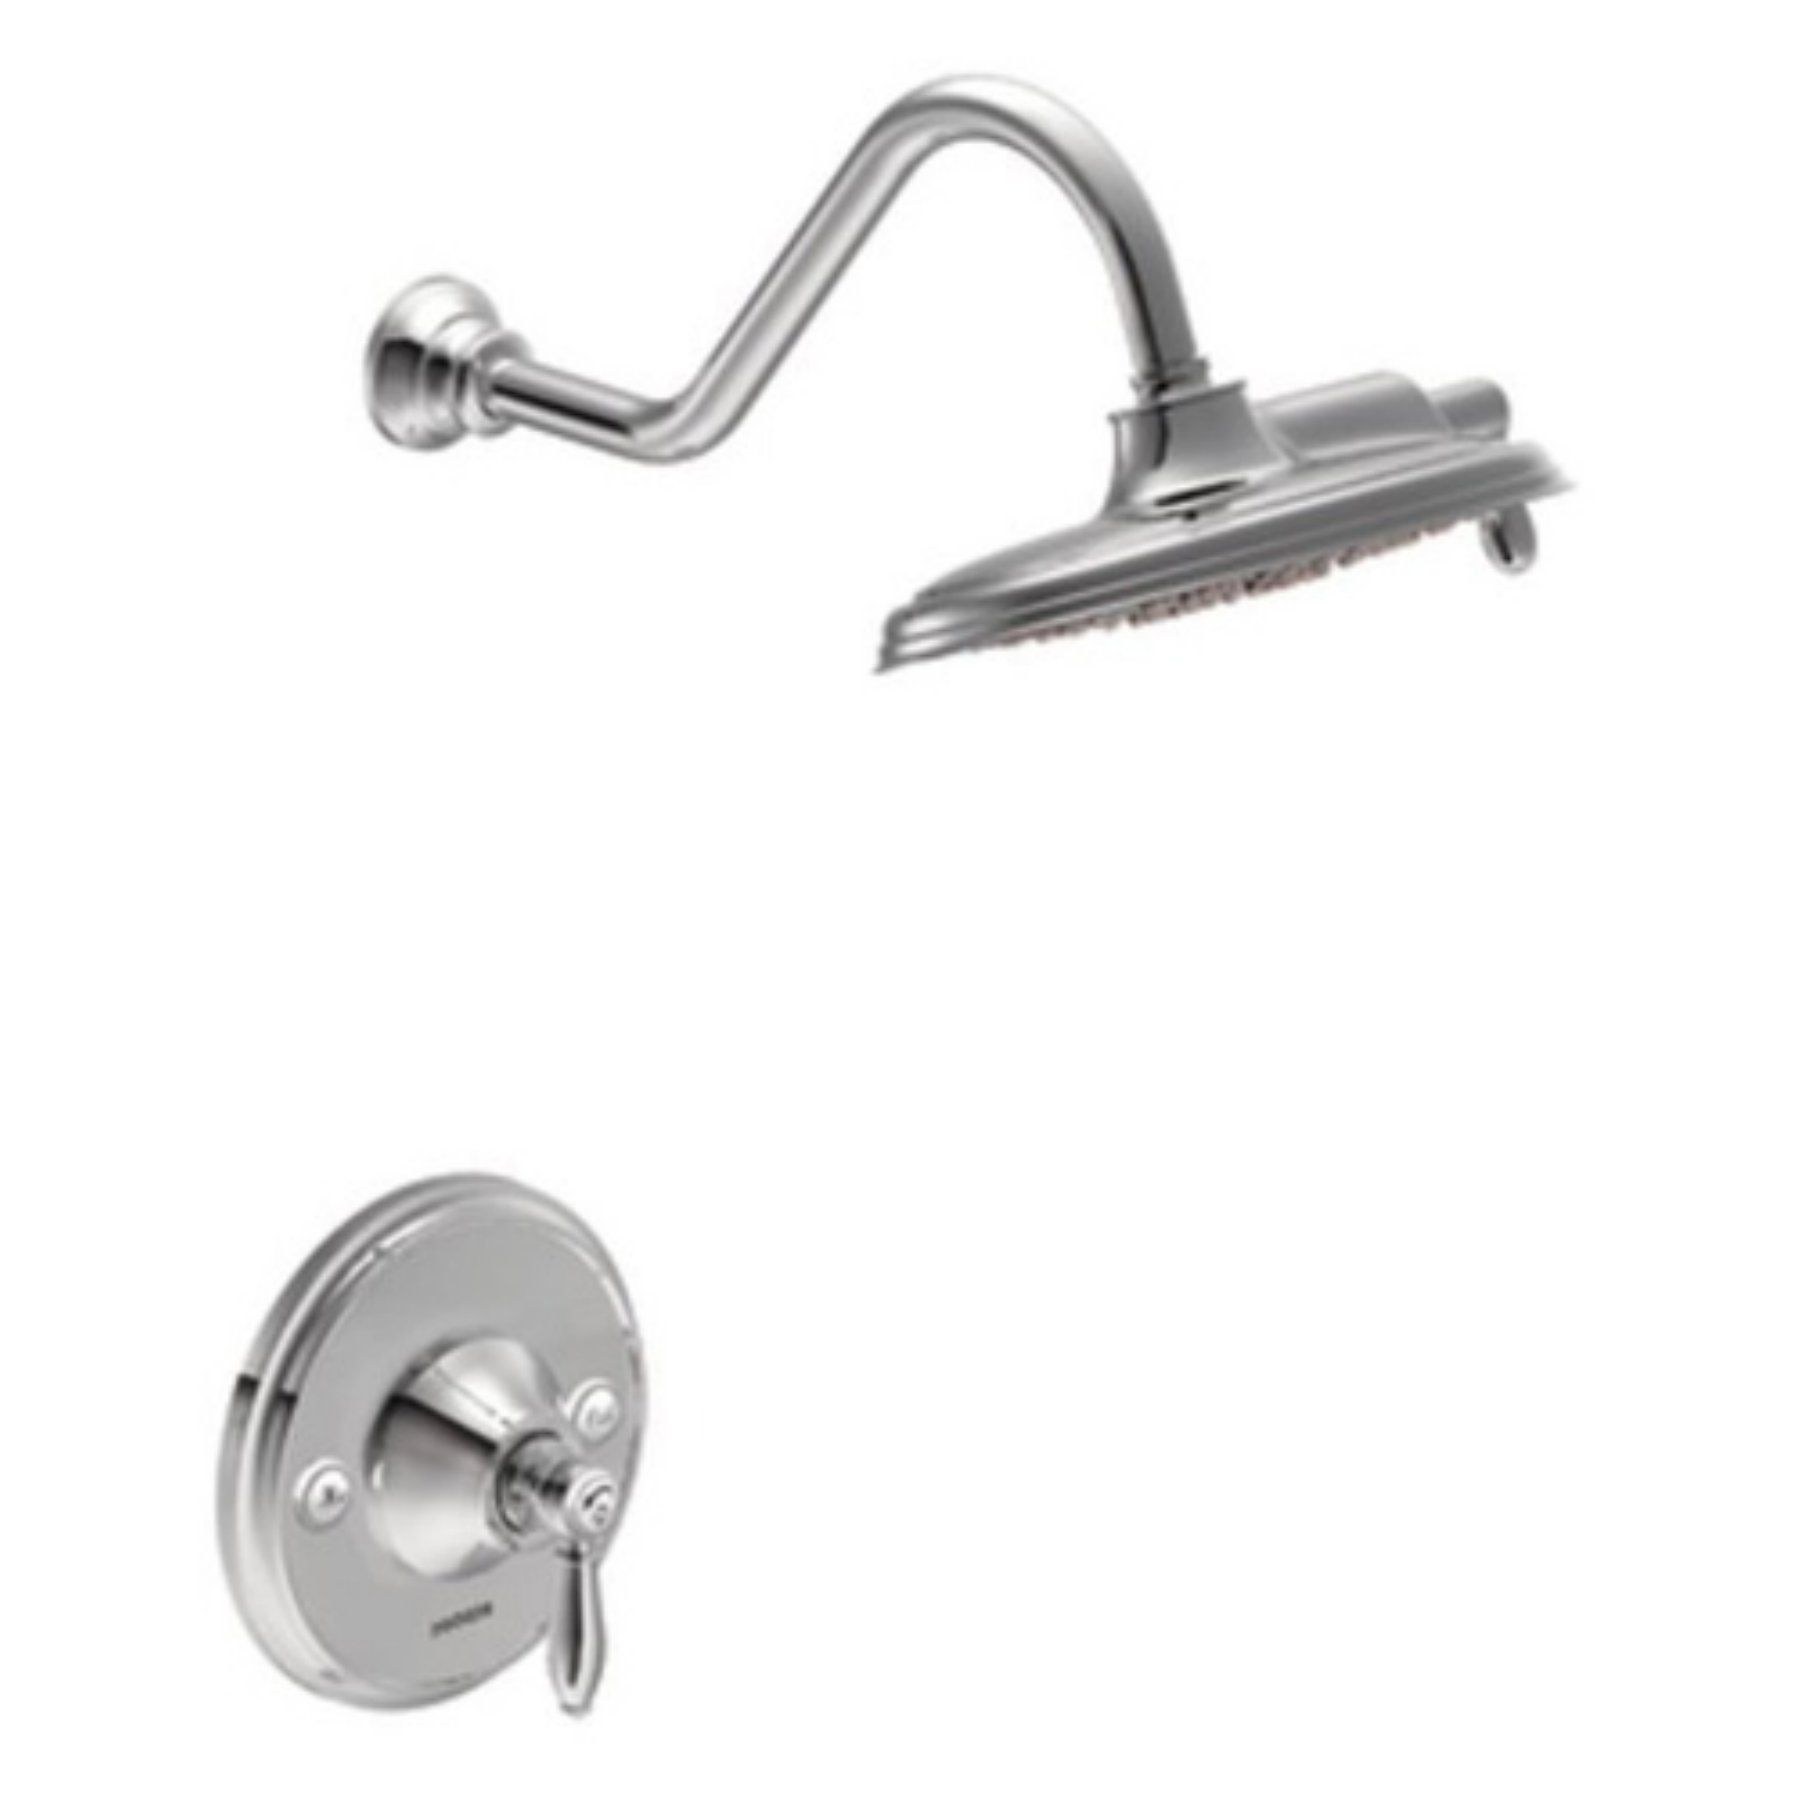 Moen Weymouth Ts32102 Eco Performance Shower Trim Package Shower